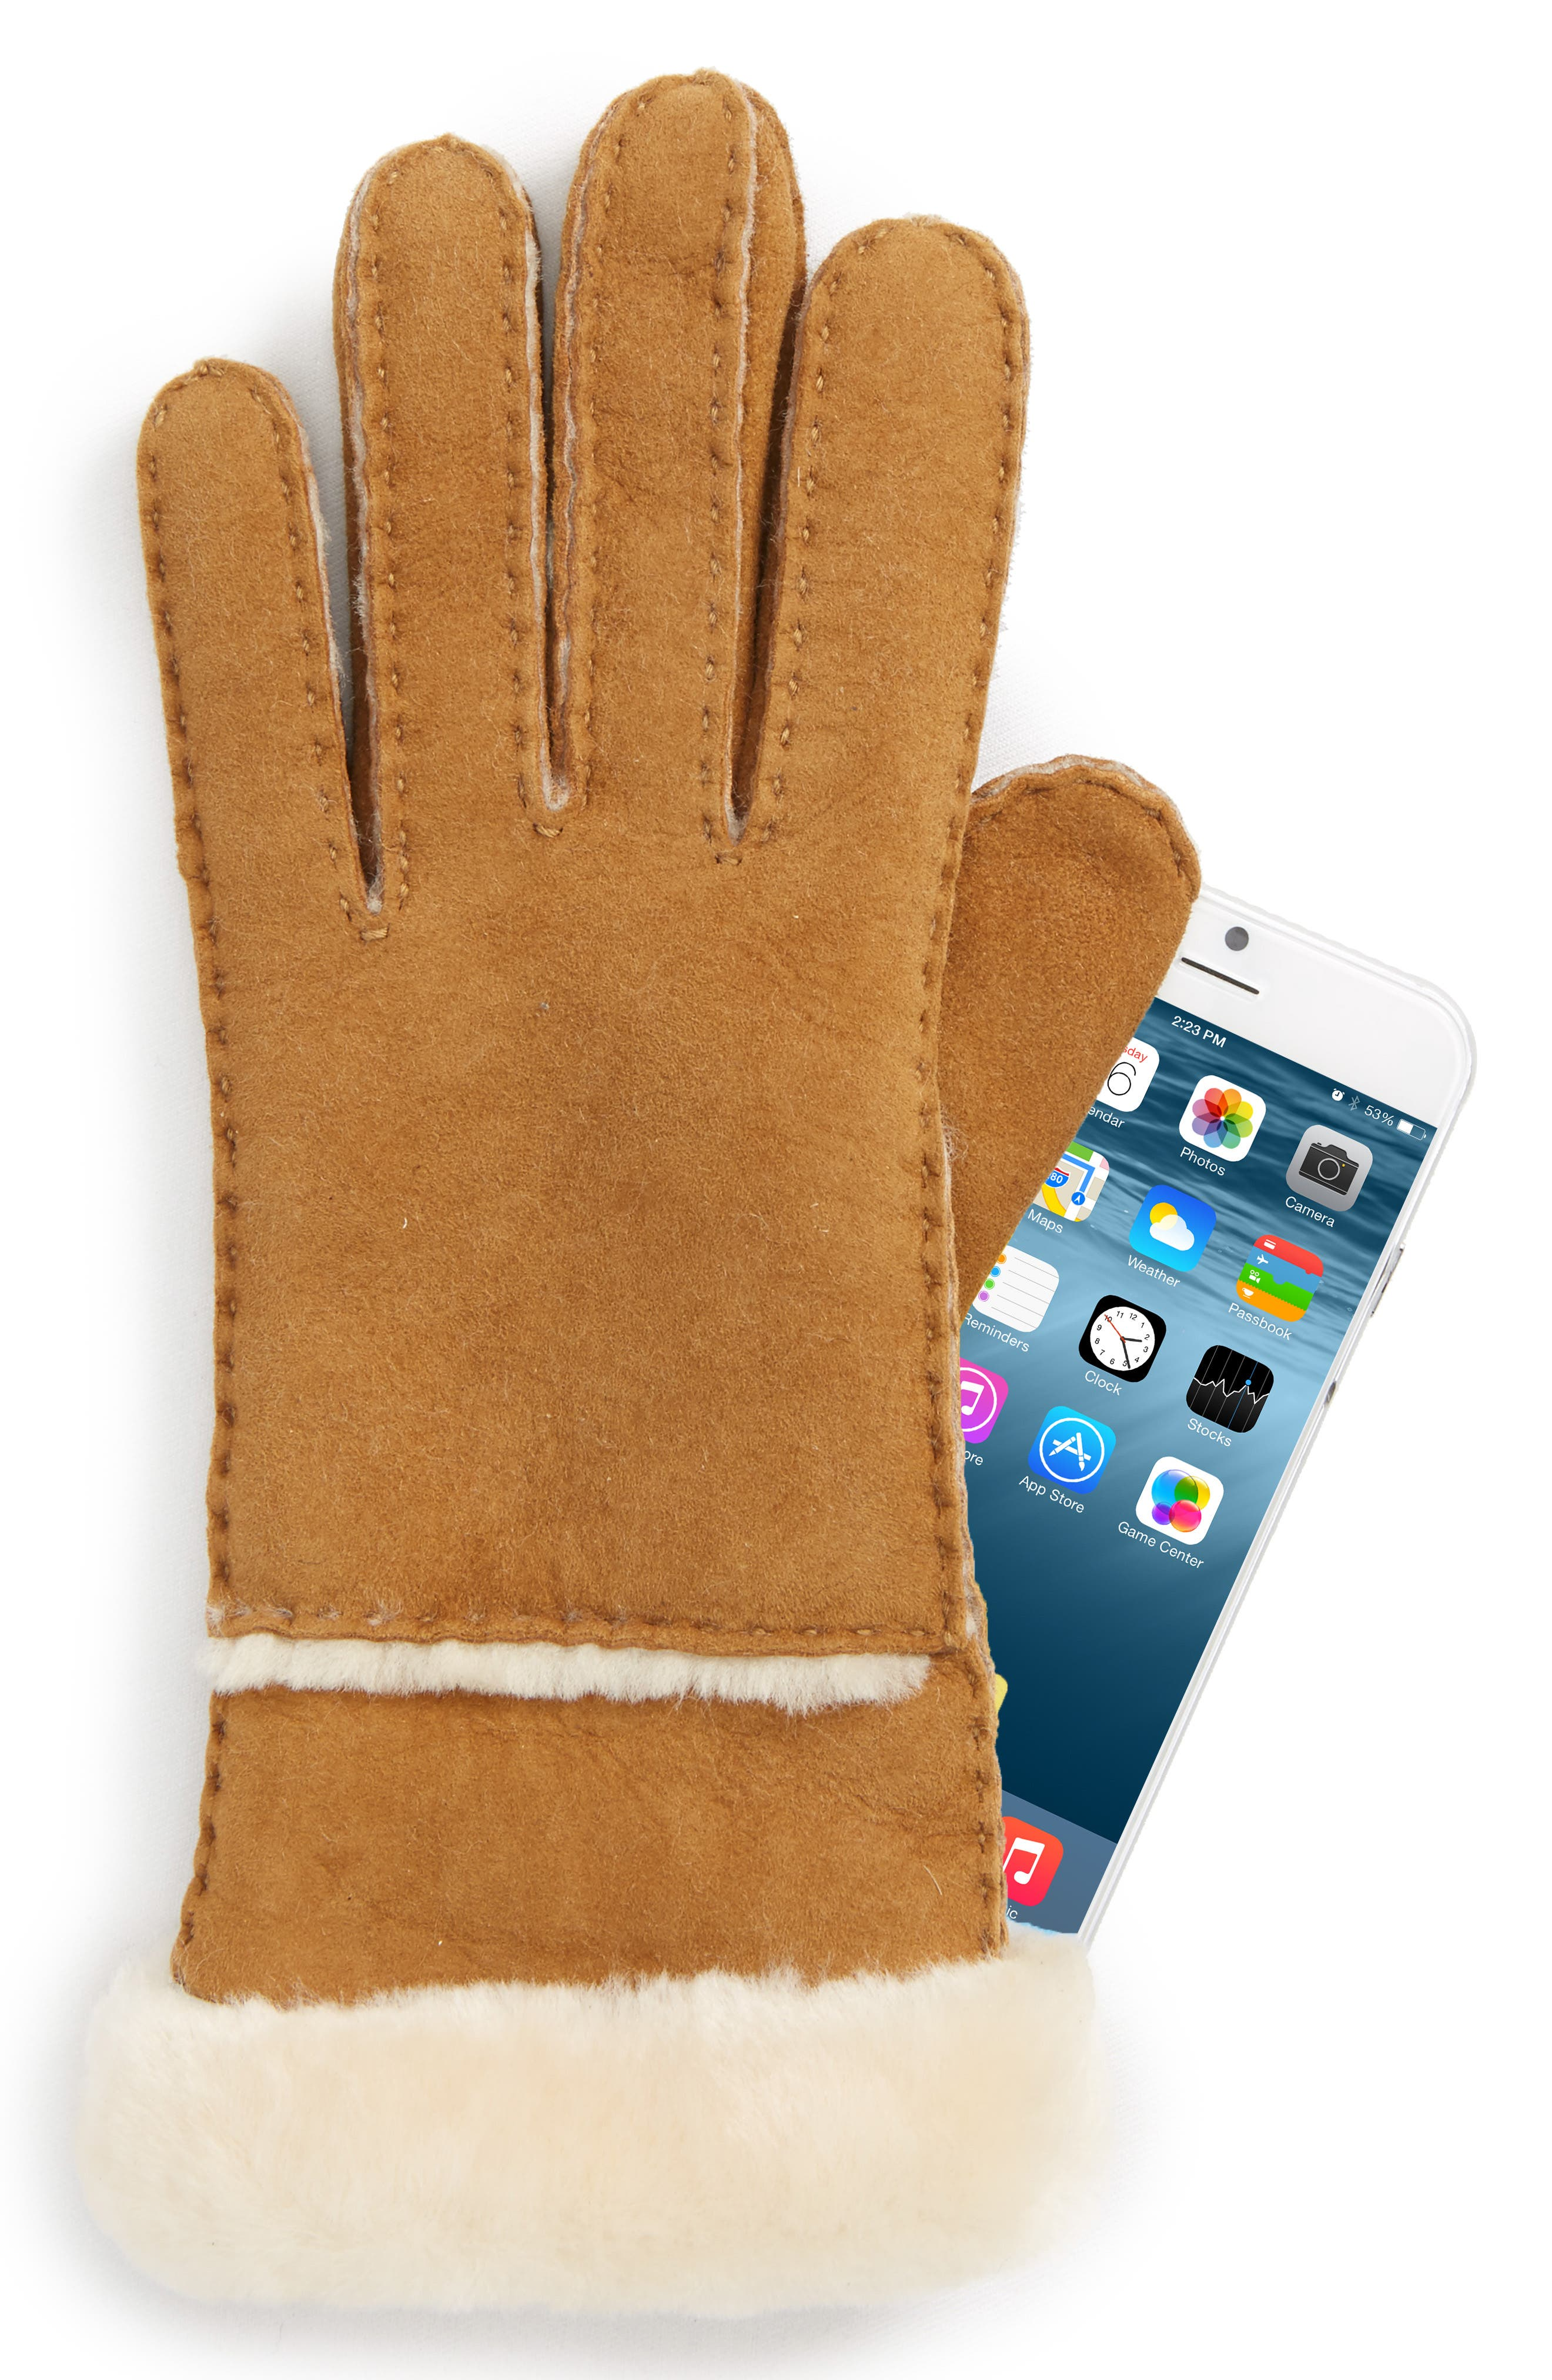 UGG<sup>®</sup> Slim Genuine Shearling Tech Gloves,                             Alternate thumbnail 2, color,                             Chestnut